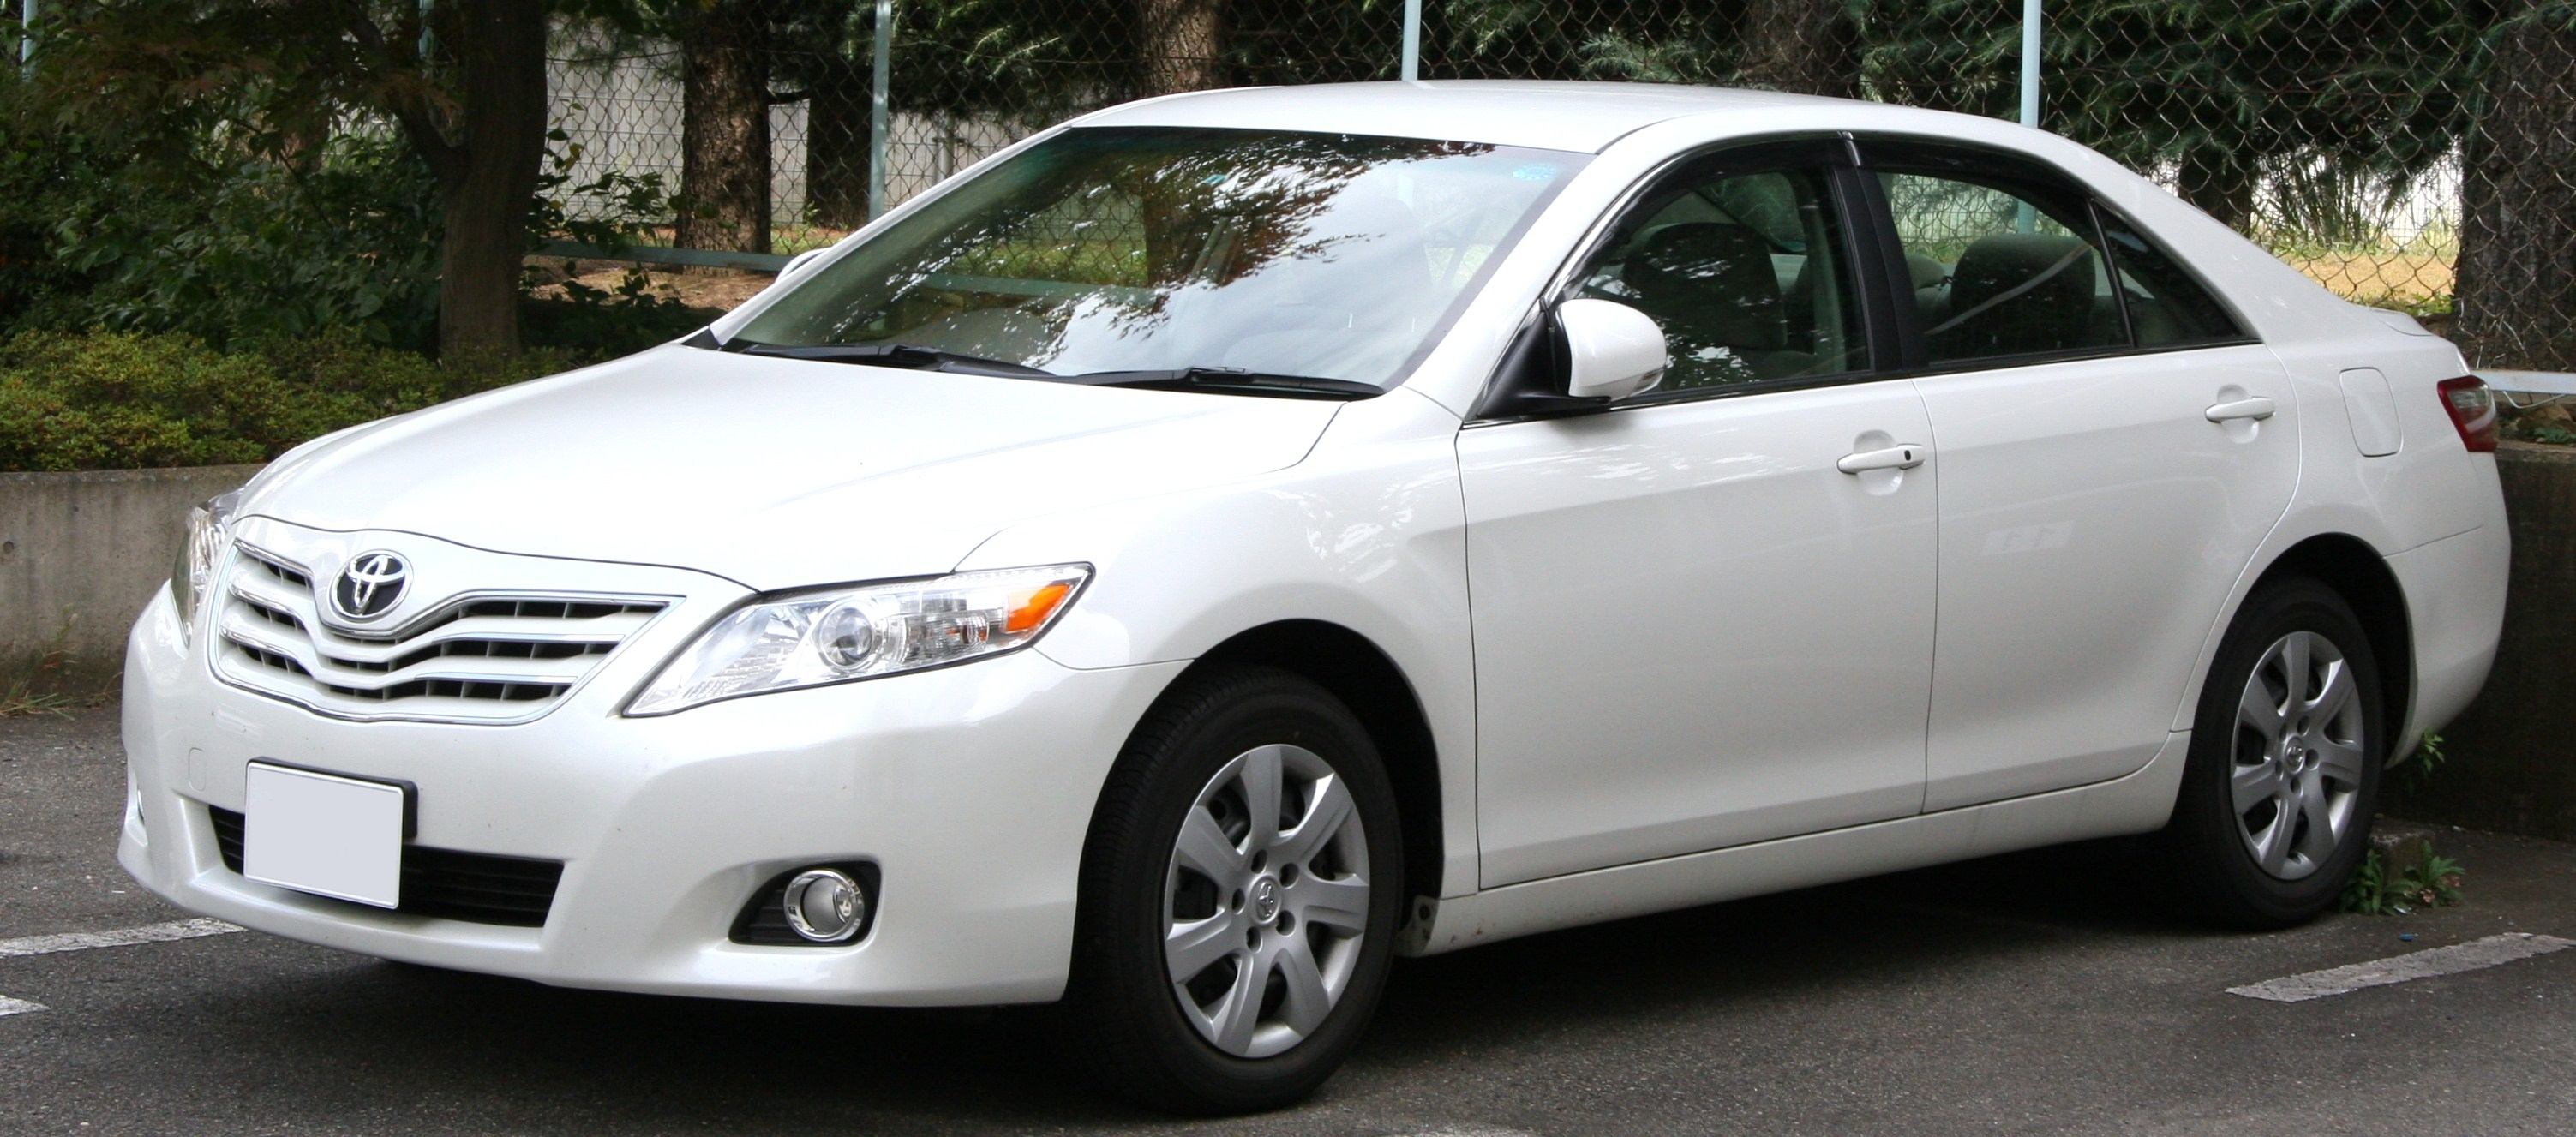 2009 toyota camry wikipedia. Black Bedroom Furniture Sets. Home Design Ideas